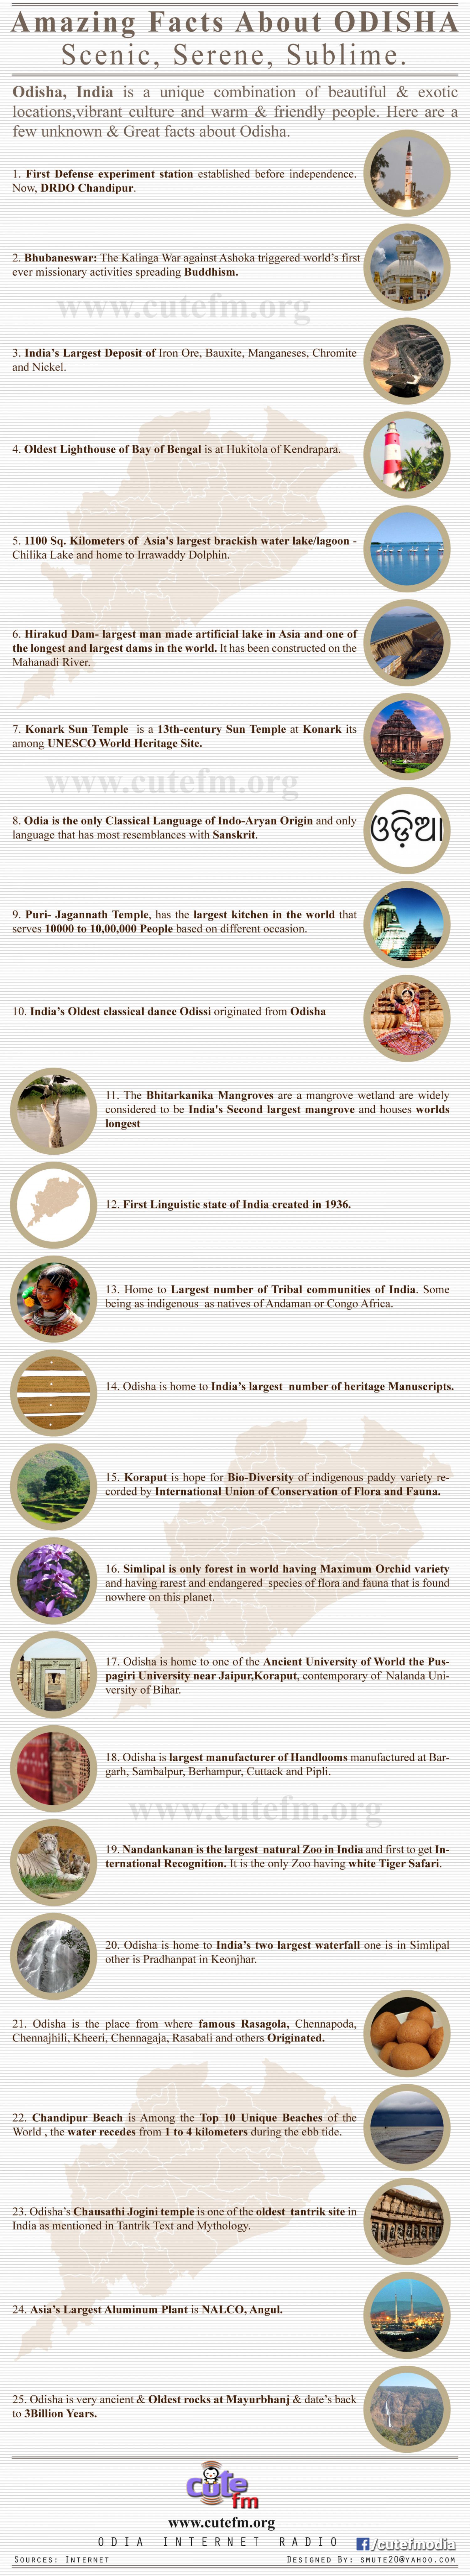 Amazing Facts About ODISHA Infographic